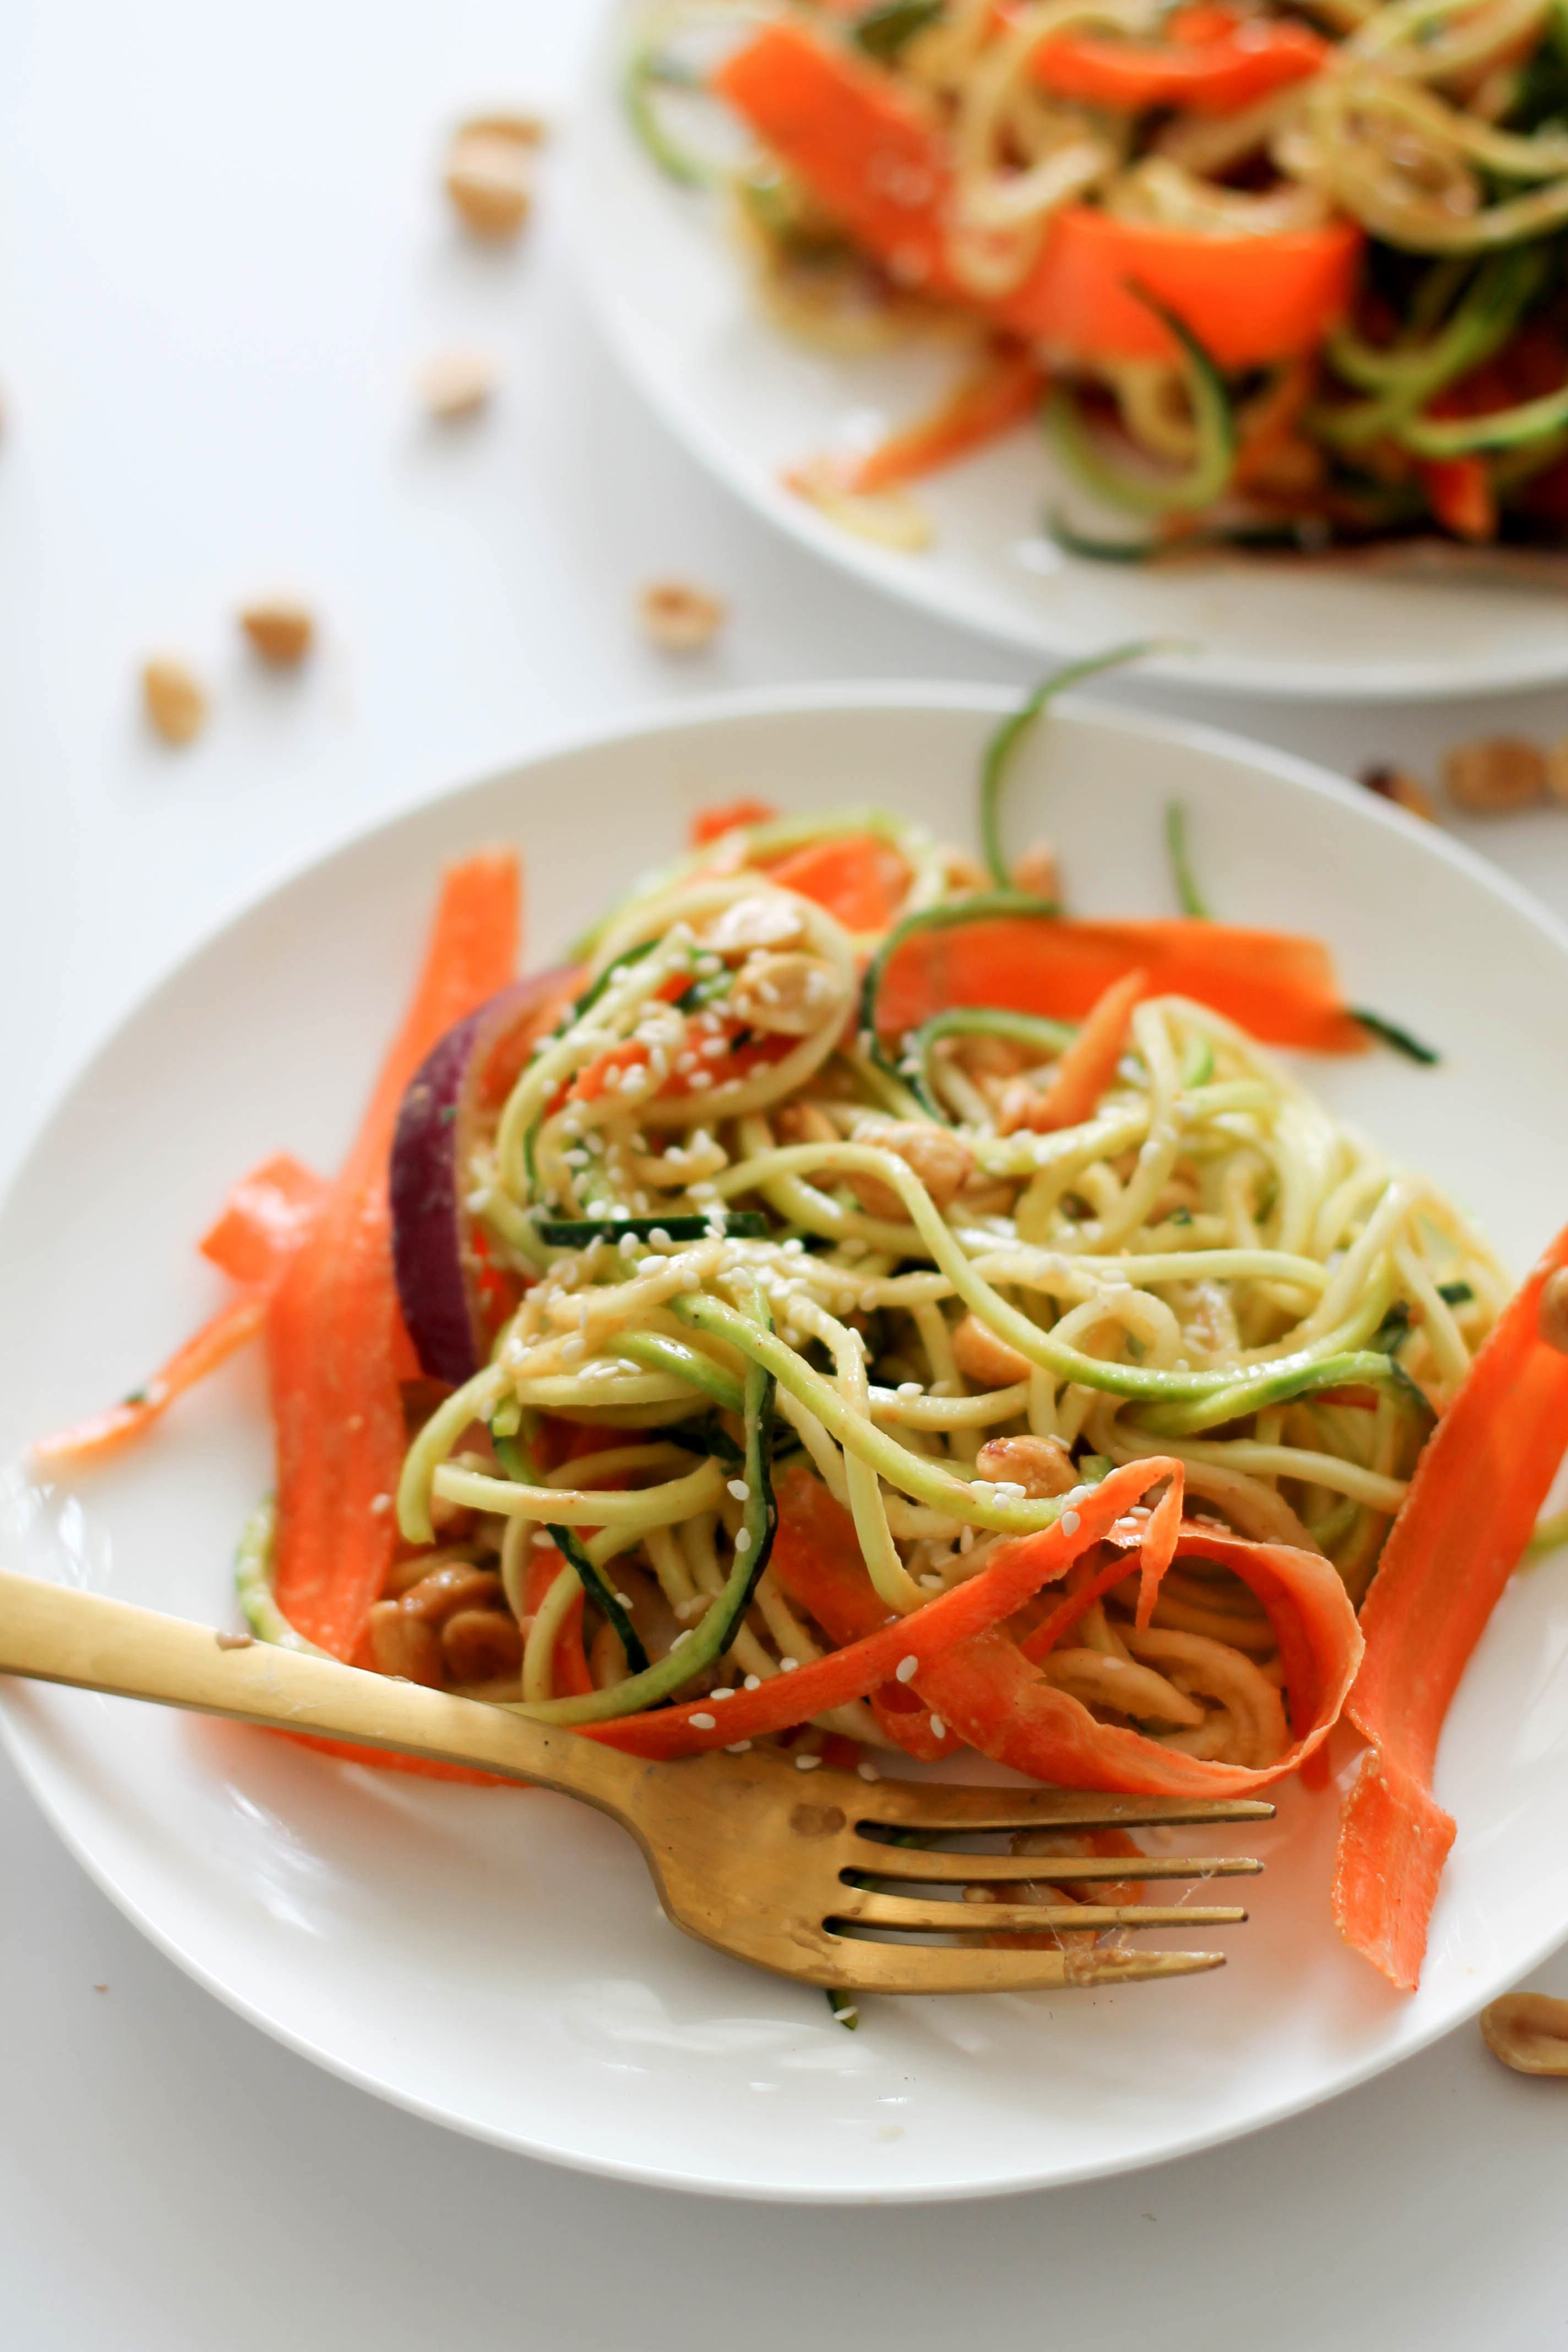 This zucchini noodle pad thai is refreshing, easy to make, and absolutely delicious. It's filled with peanut flavor, crunch, and takes less than 15 minutes to make.